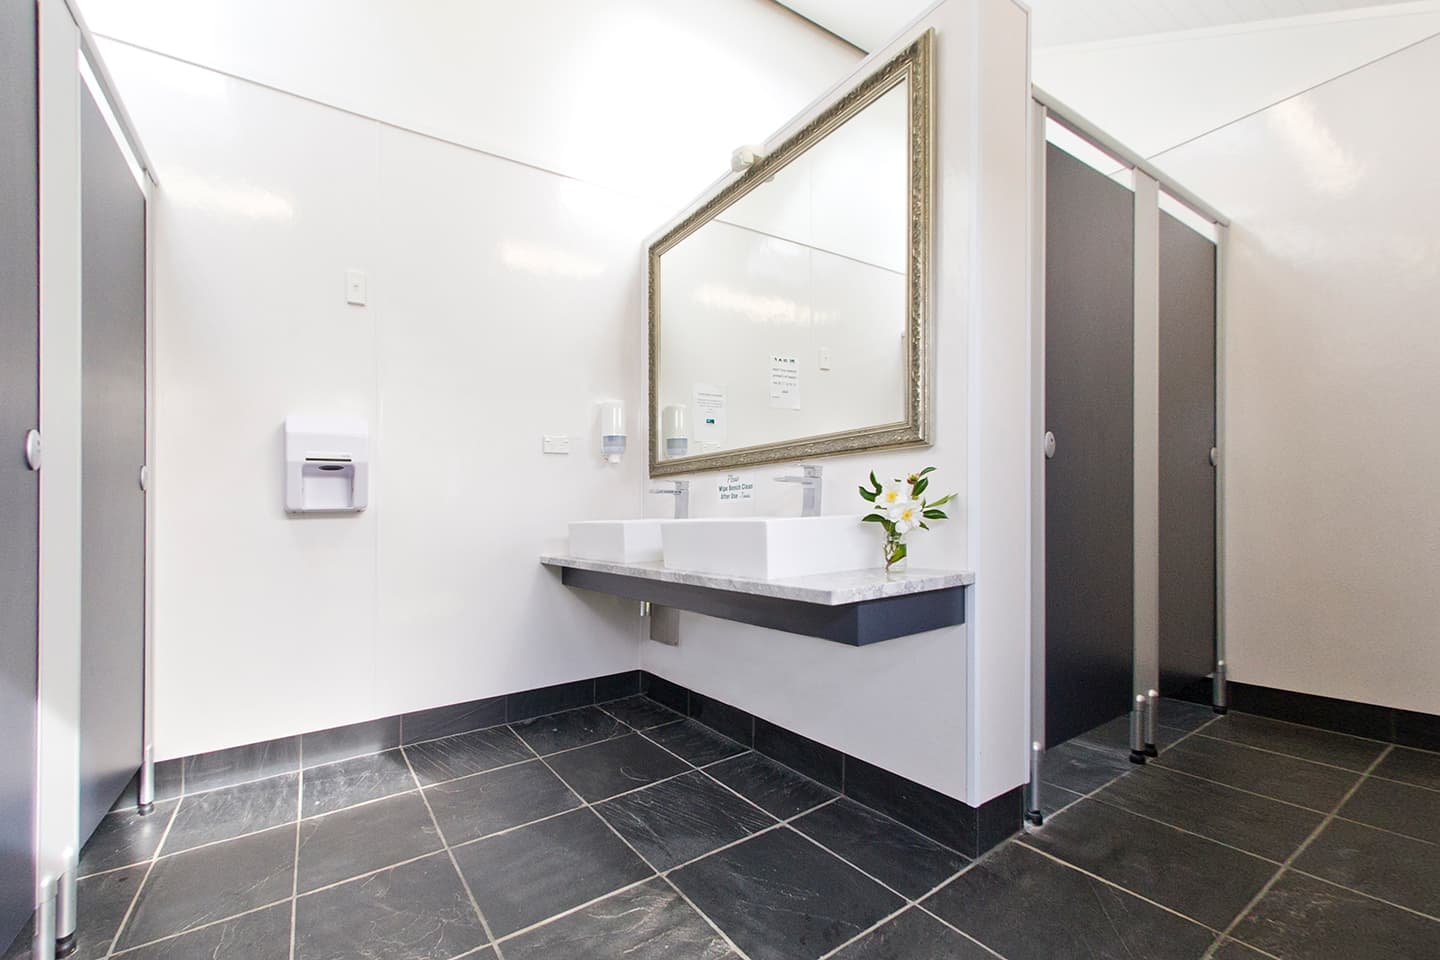 Central Block Bathroom Facilities